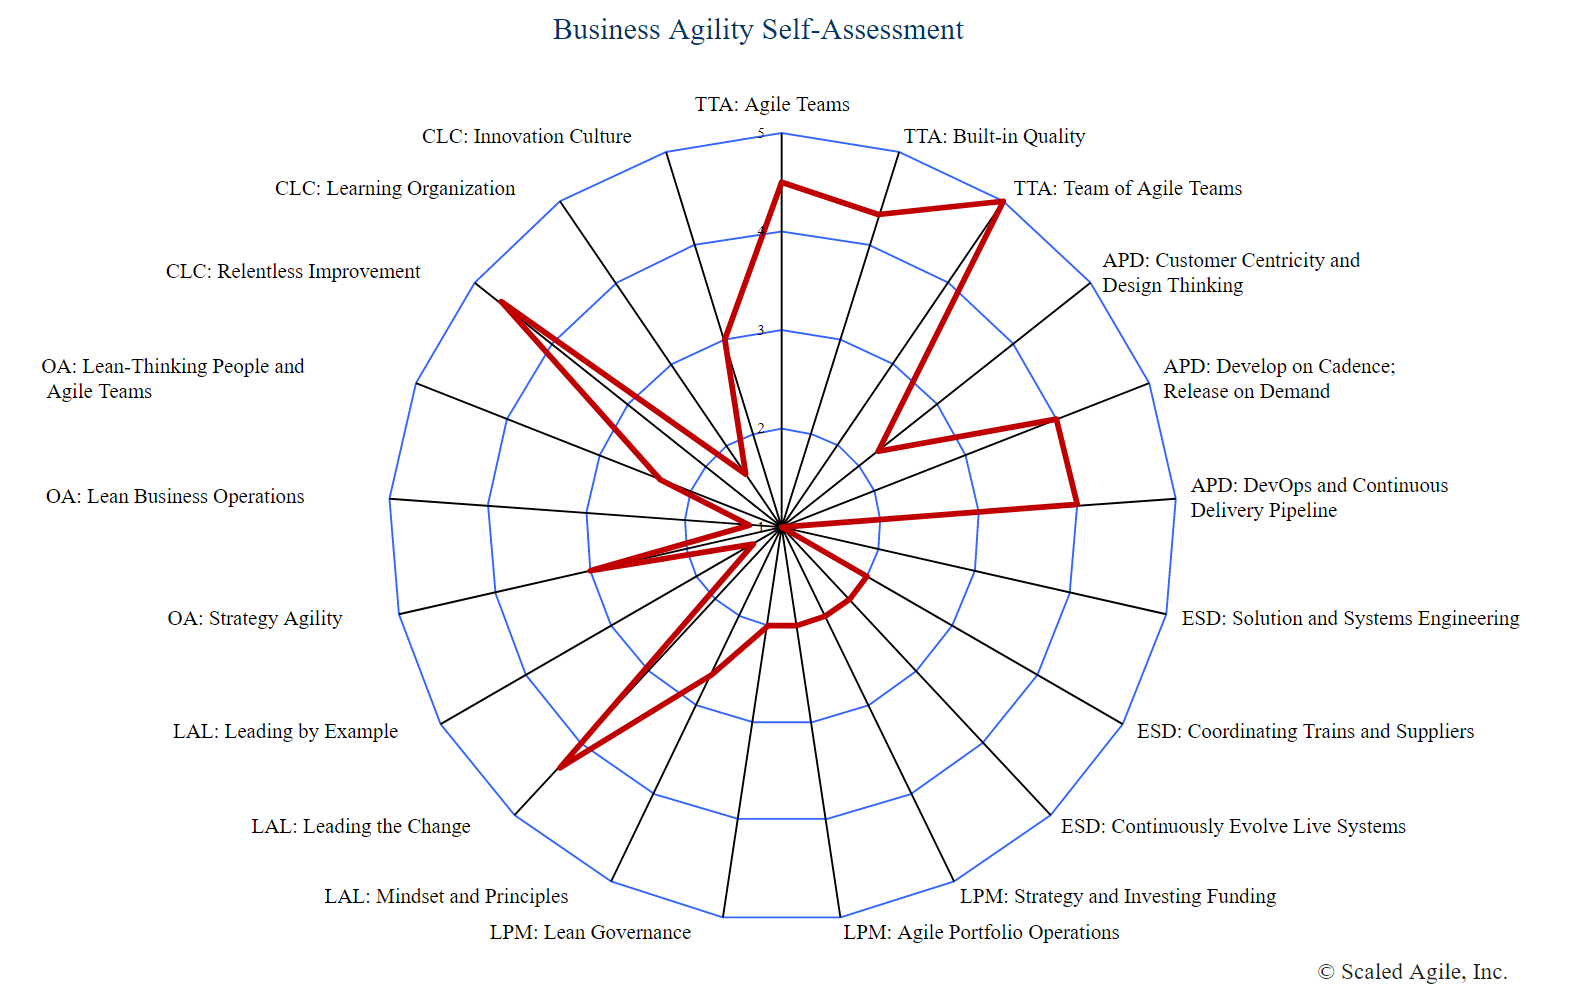 Business Agility Self-Assessment